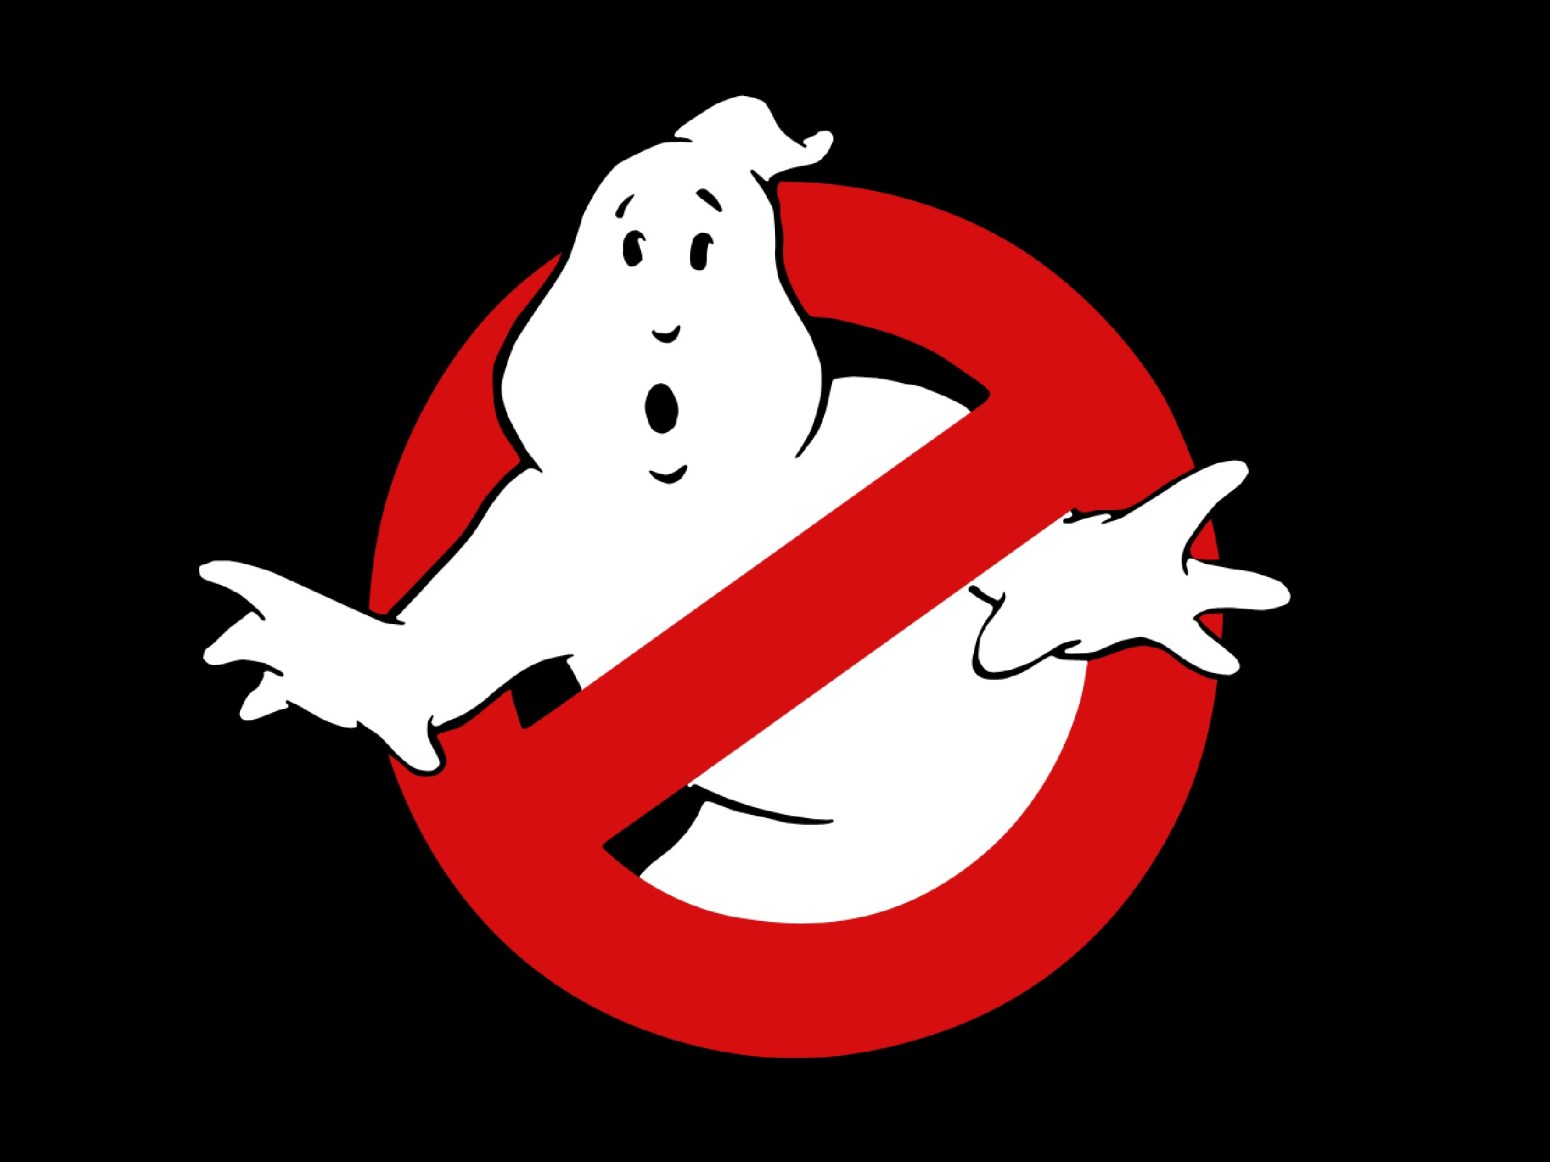 Ghostbusters 1 and 2 review